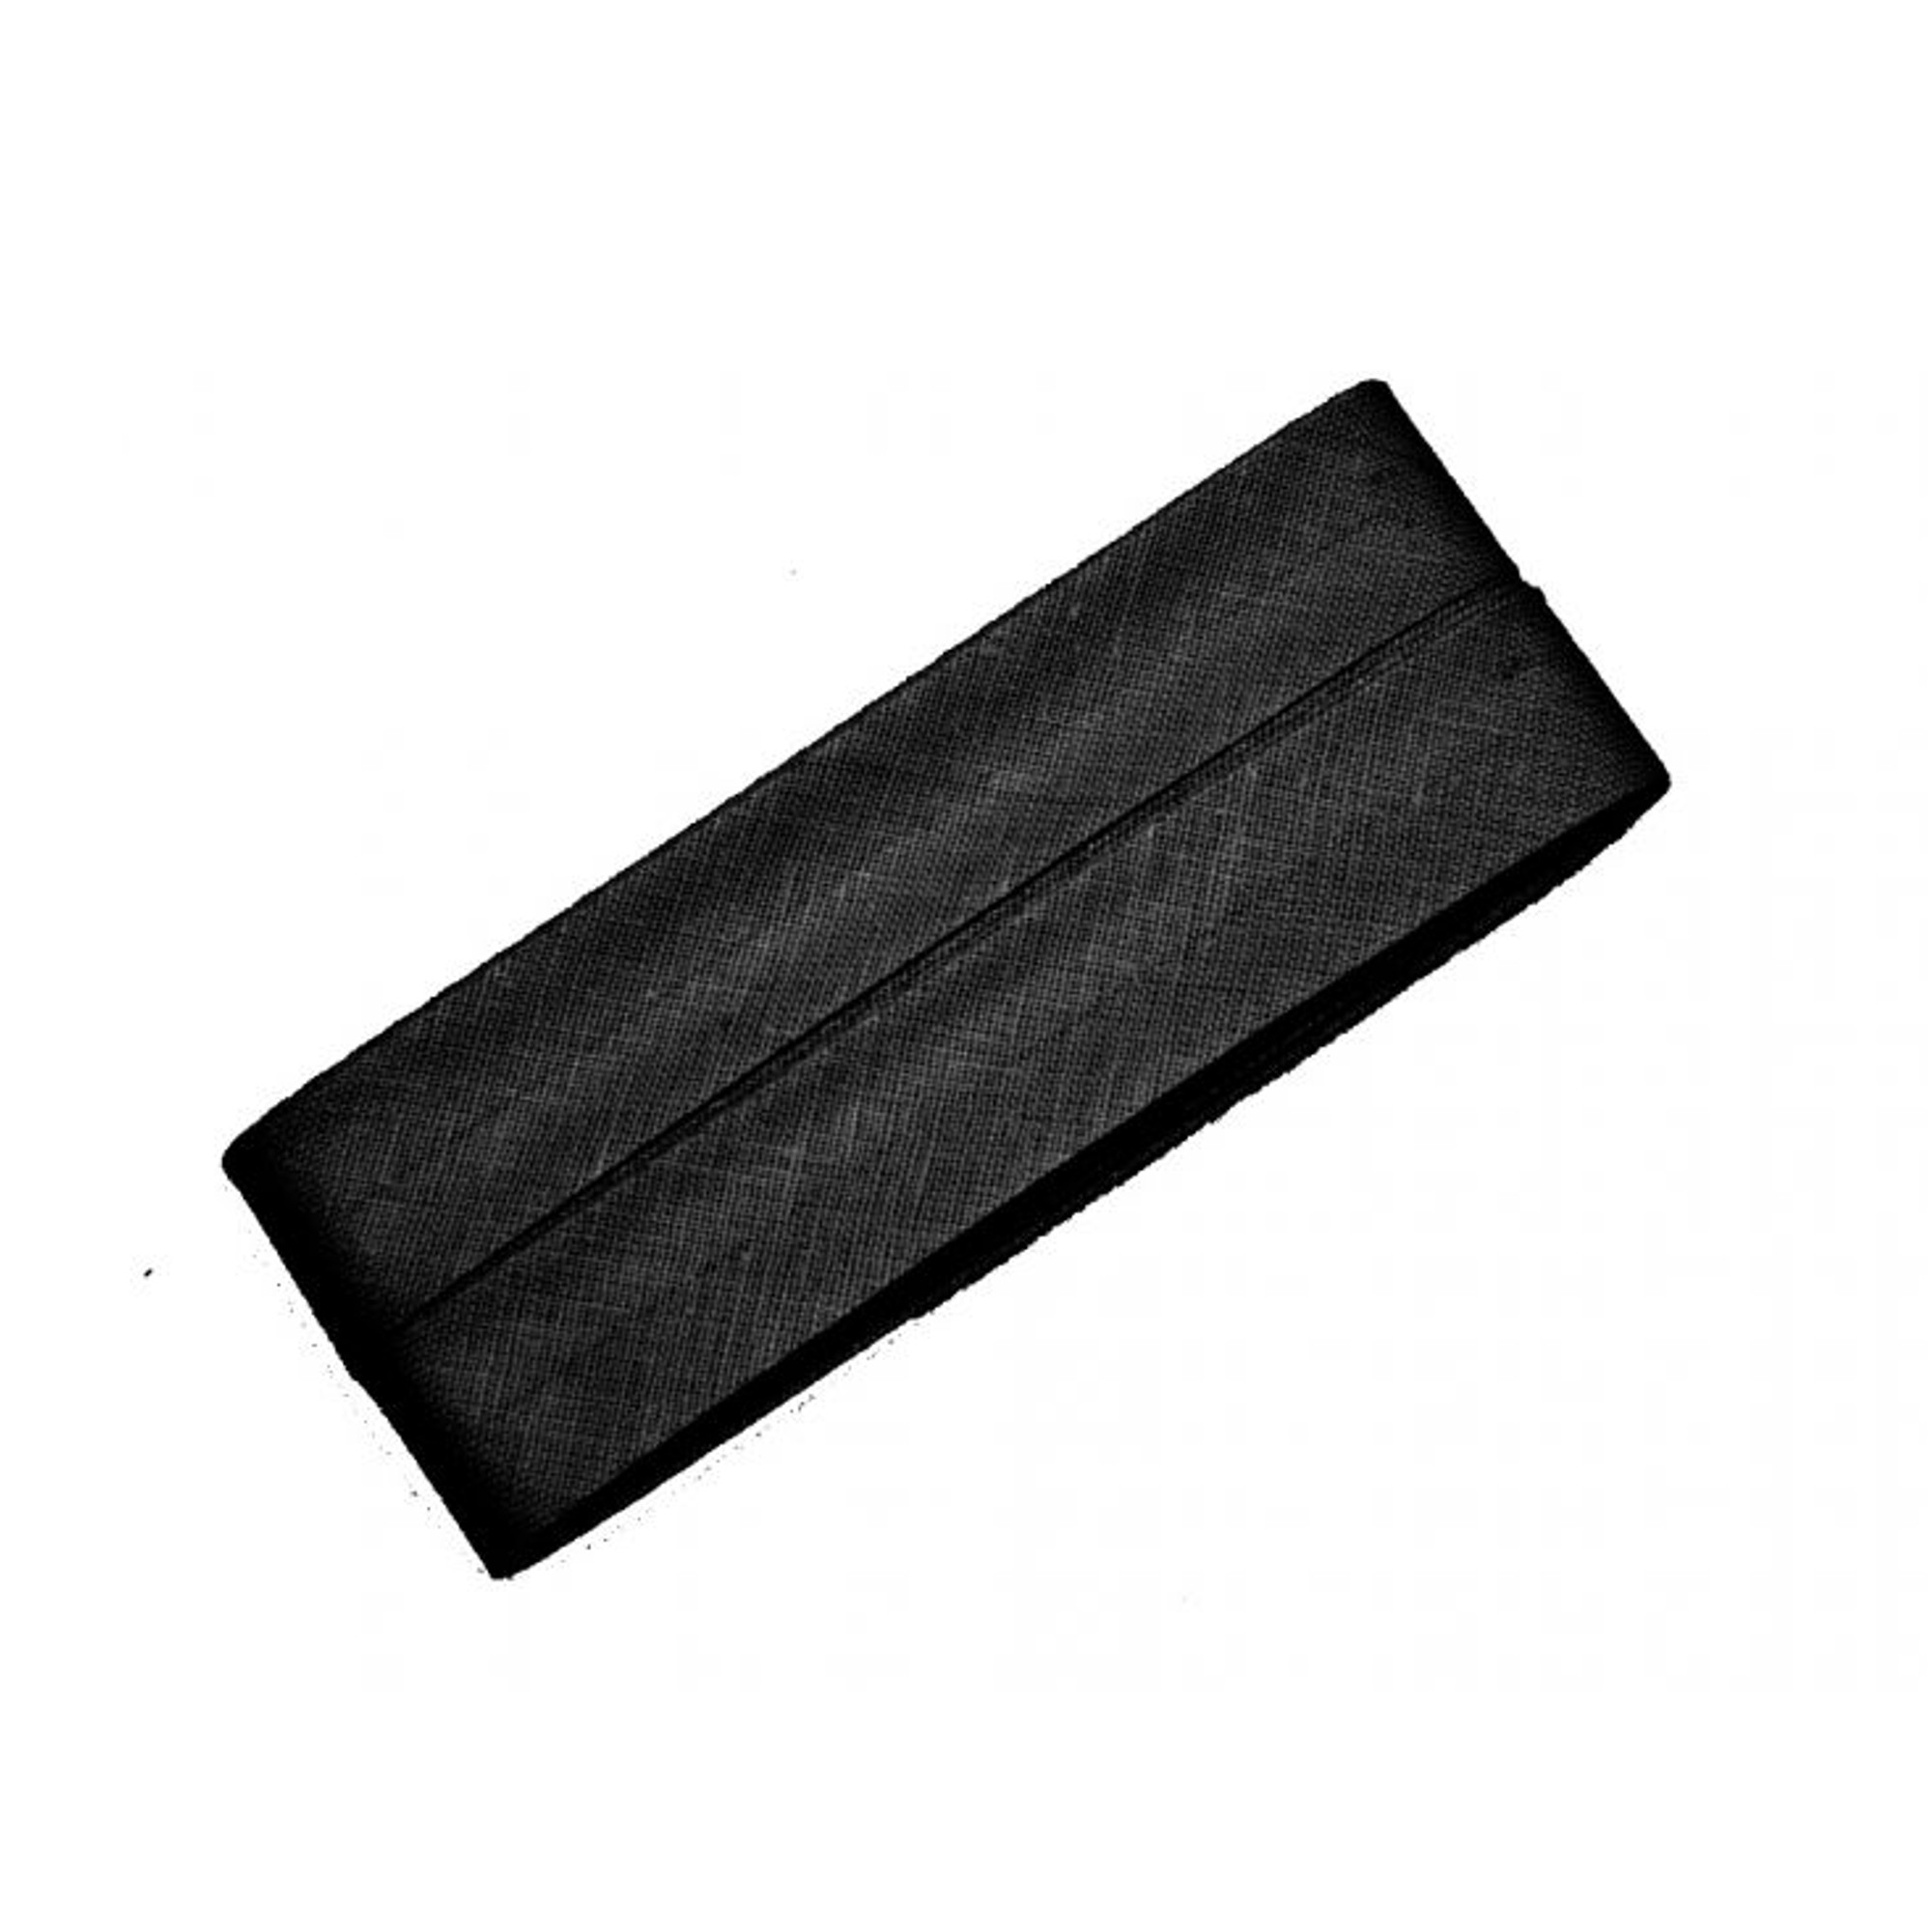 5 m Cotton bias binding black (000)